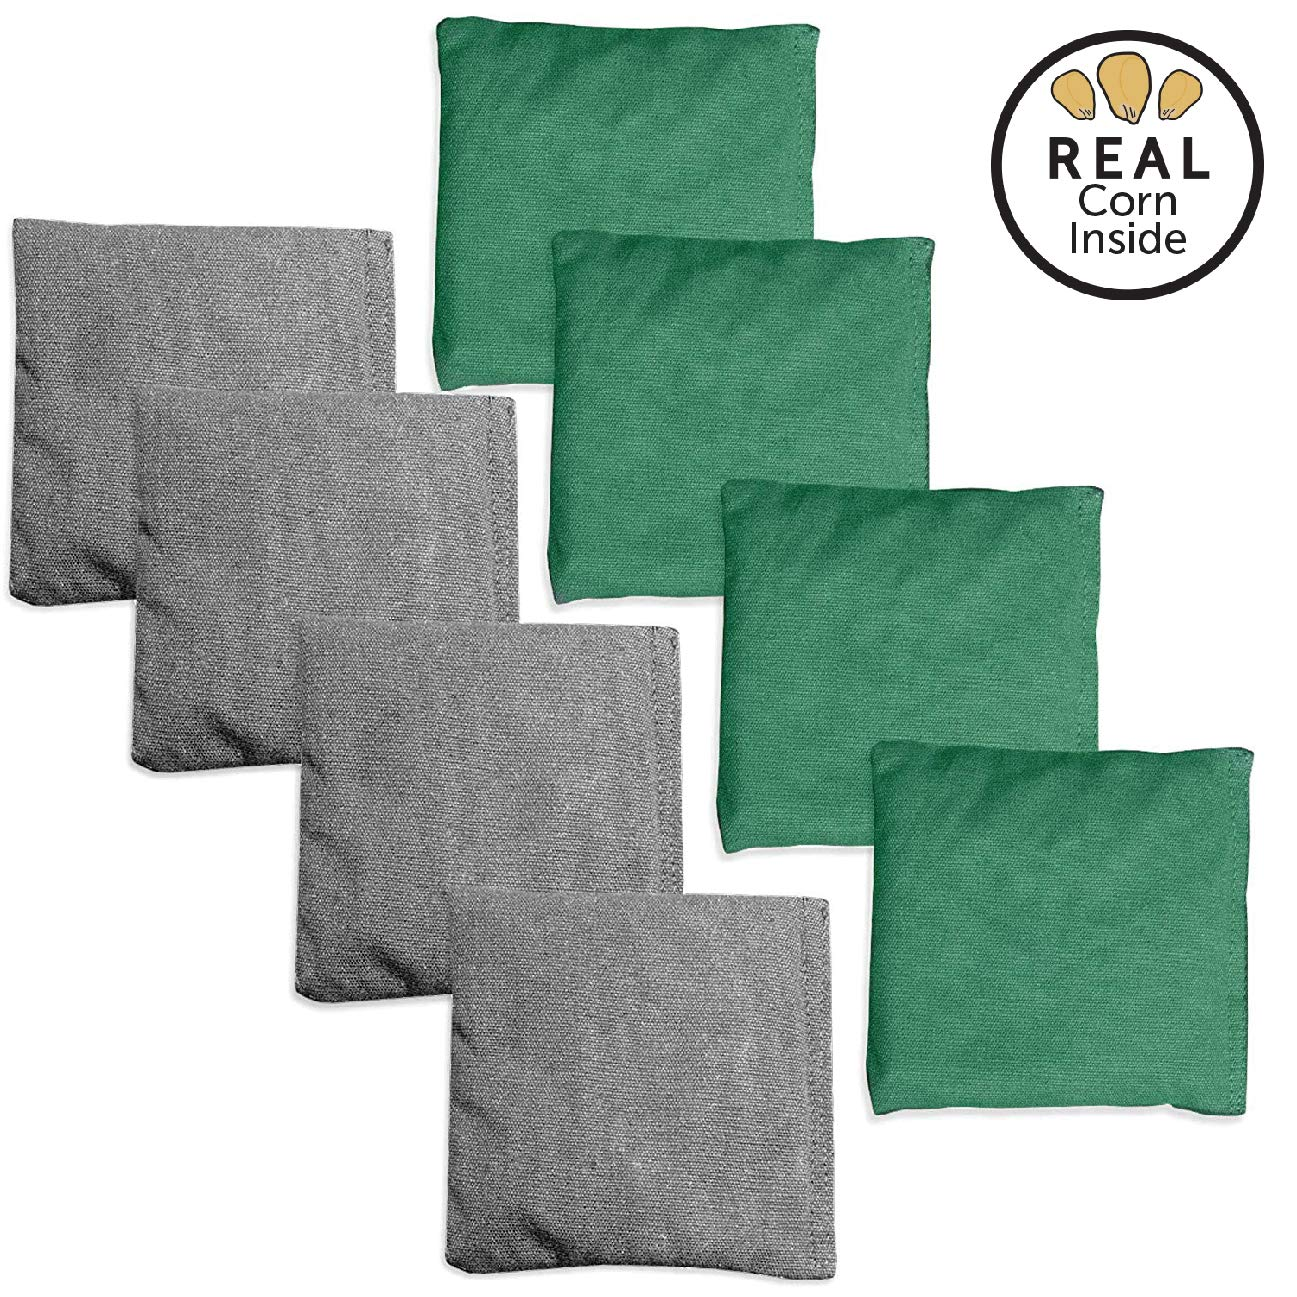 Corn Filled Cornhole Bags - Set of 8 Bean Bags for Corn Hole Game - Regulation Size & Weight - Bright Green & Gray